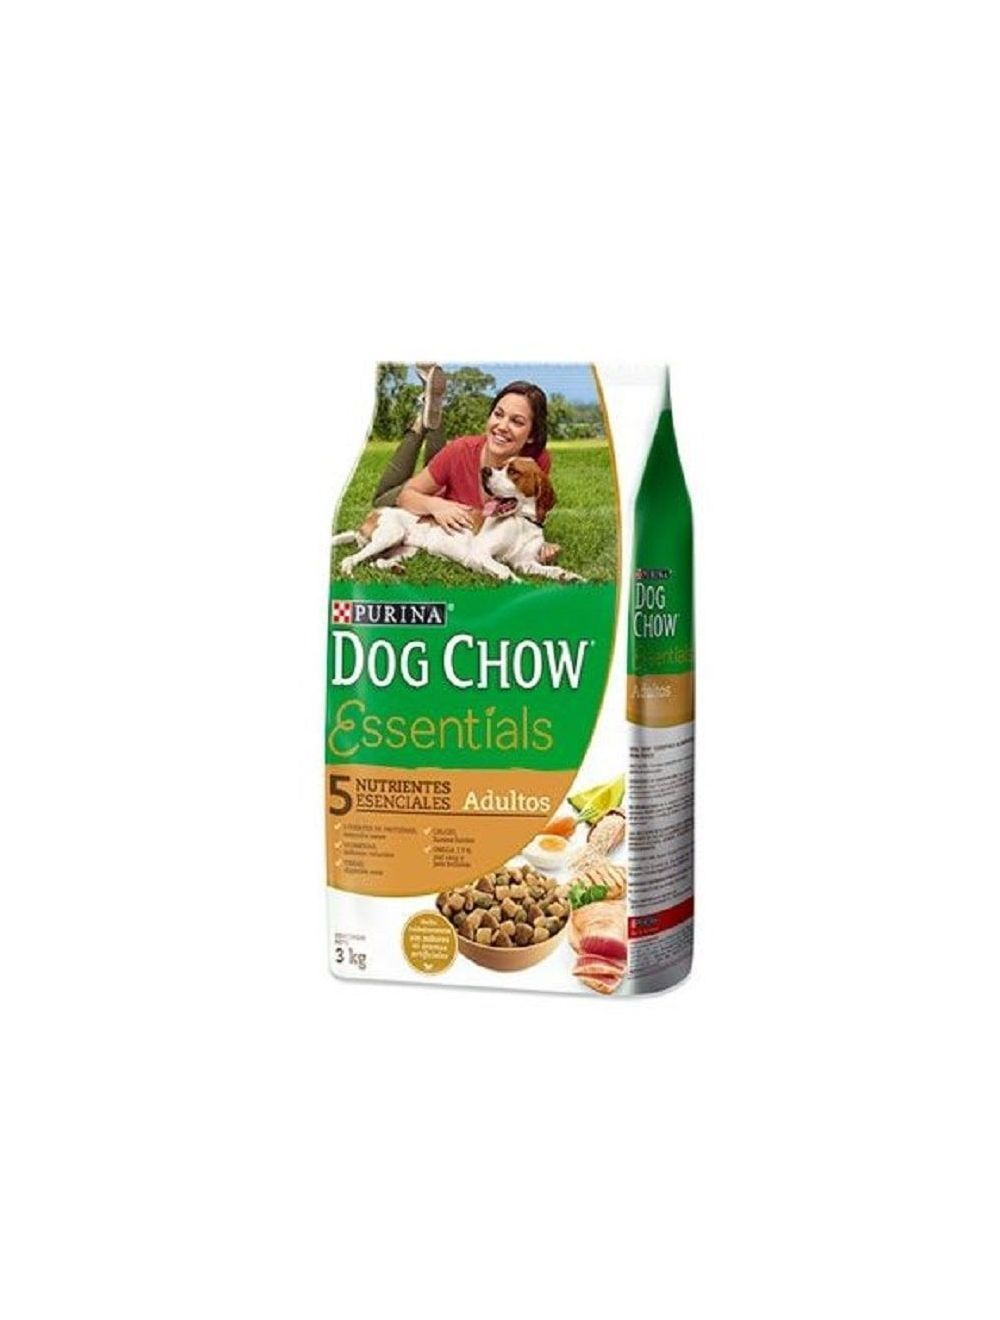 Dog Chow Adultos Essentials 1.5 KG